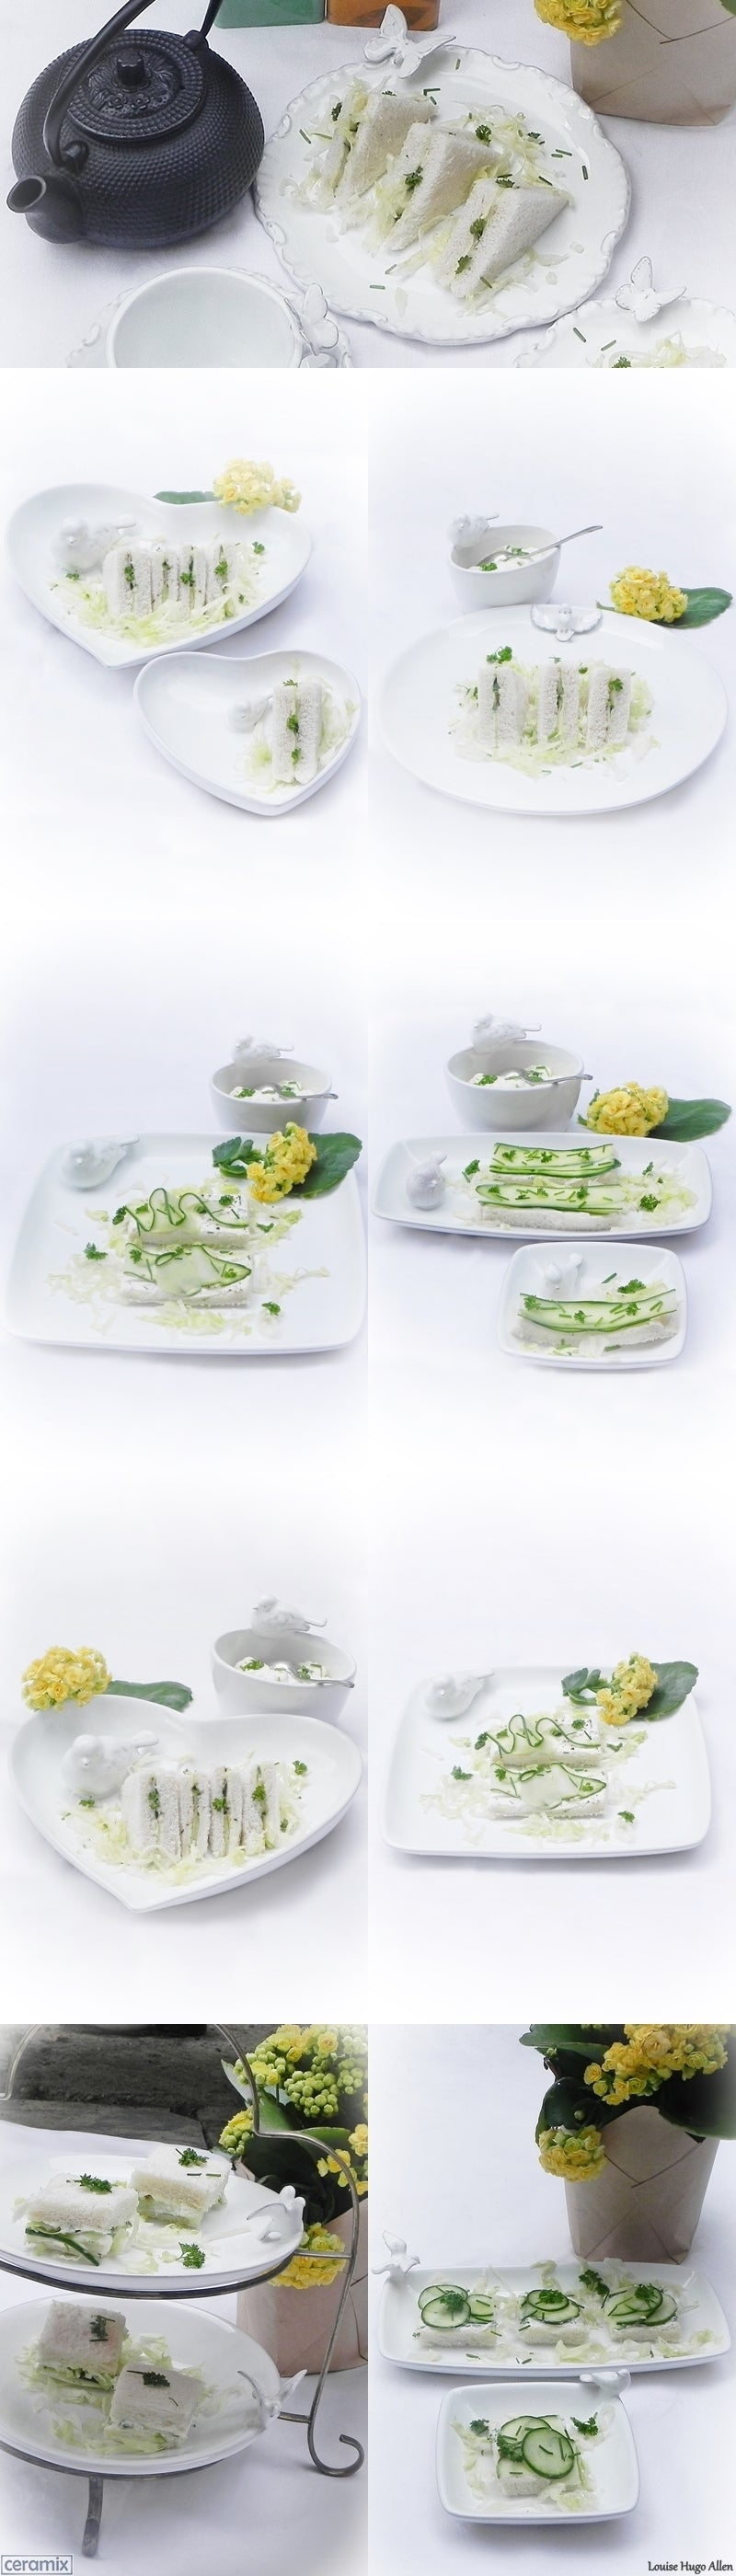 Cucumber Sandwiches served in 4 different ways on Ceramix ware.